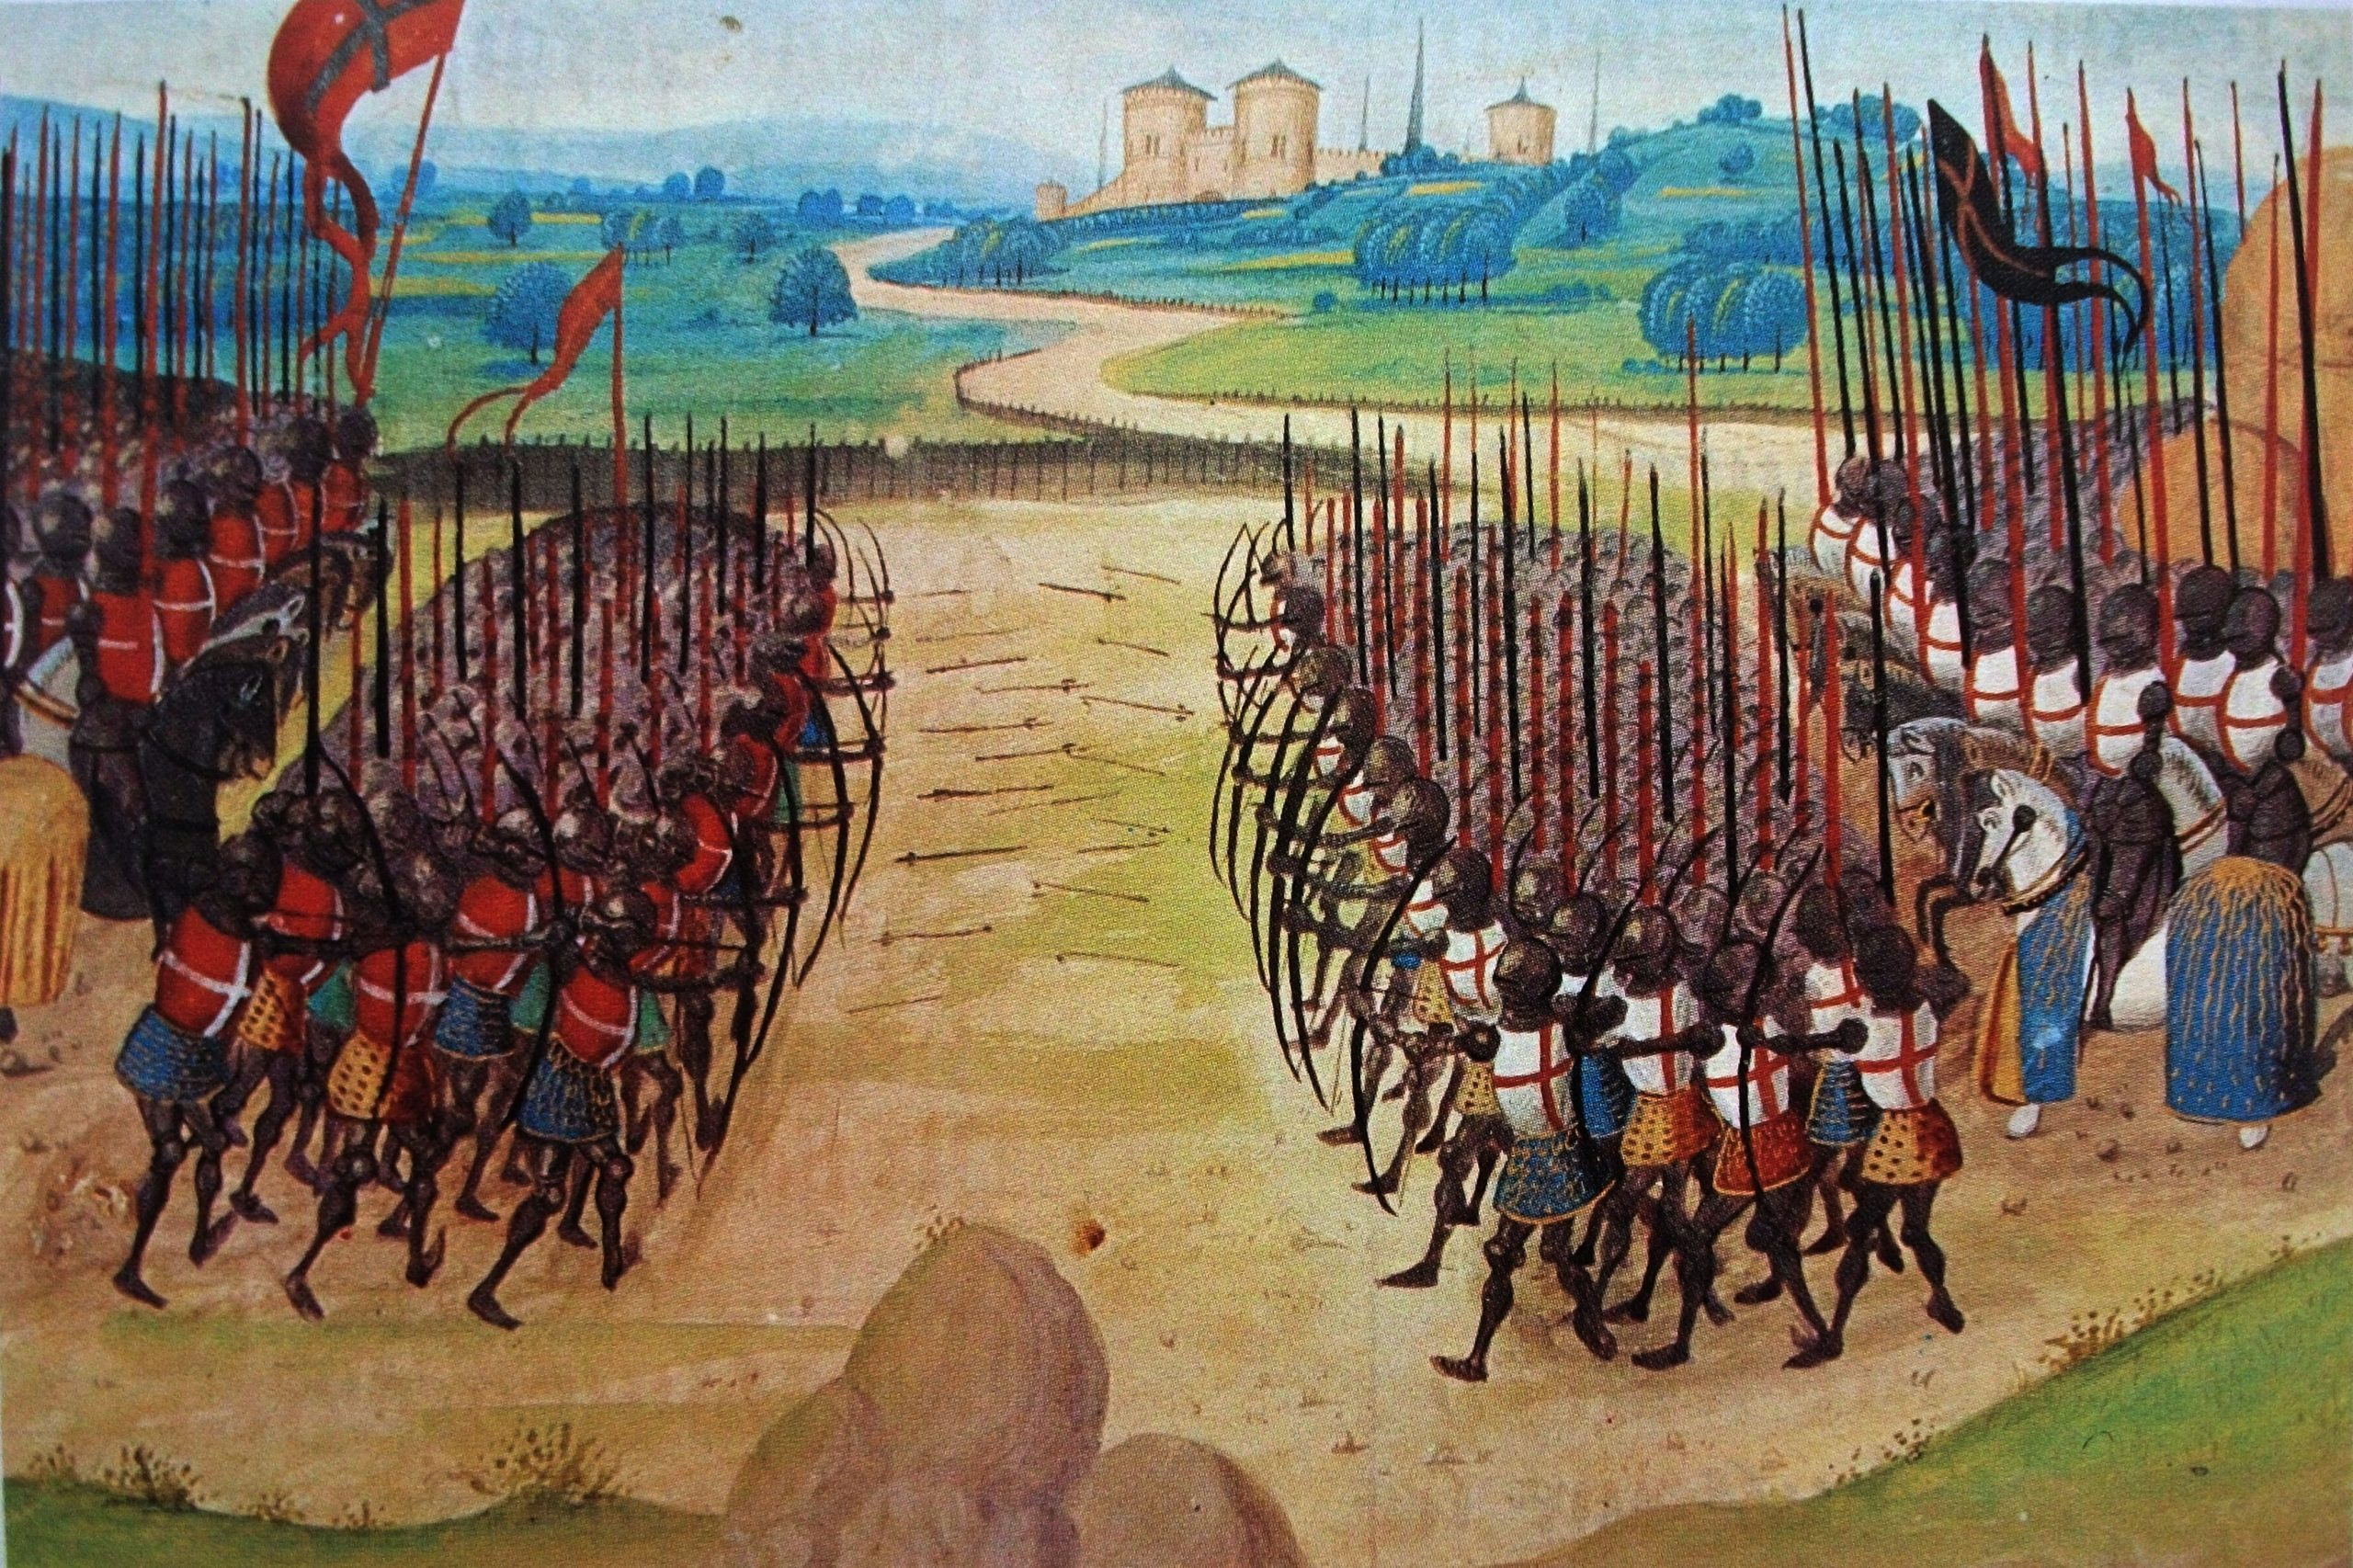 The Middle Ages A Comprehensive Overview Of Europe 500